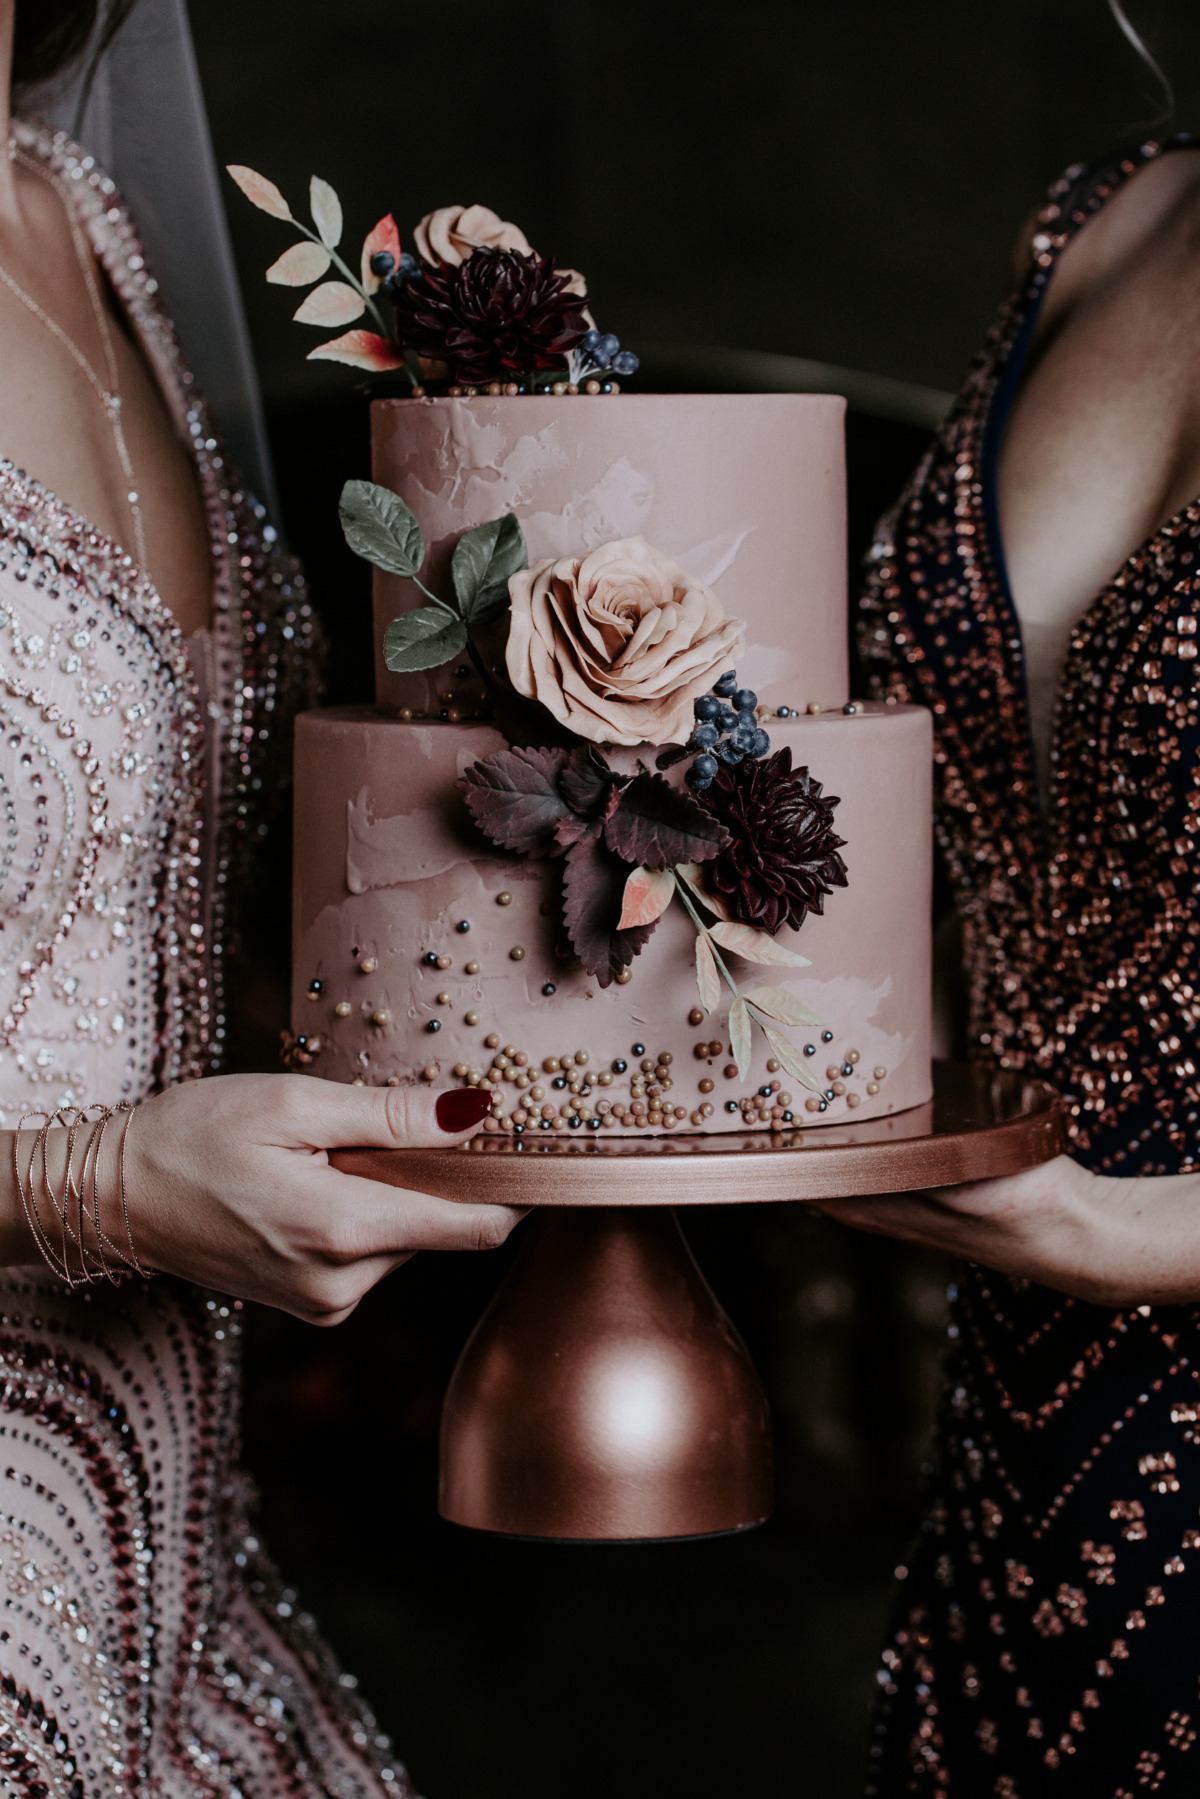 Moody rose wedding cake